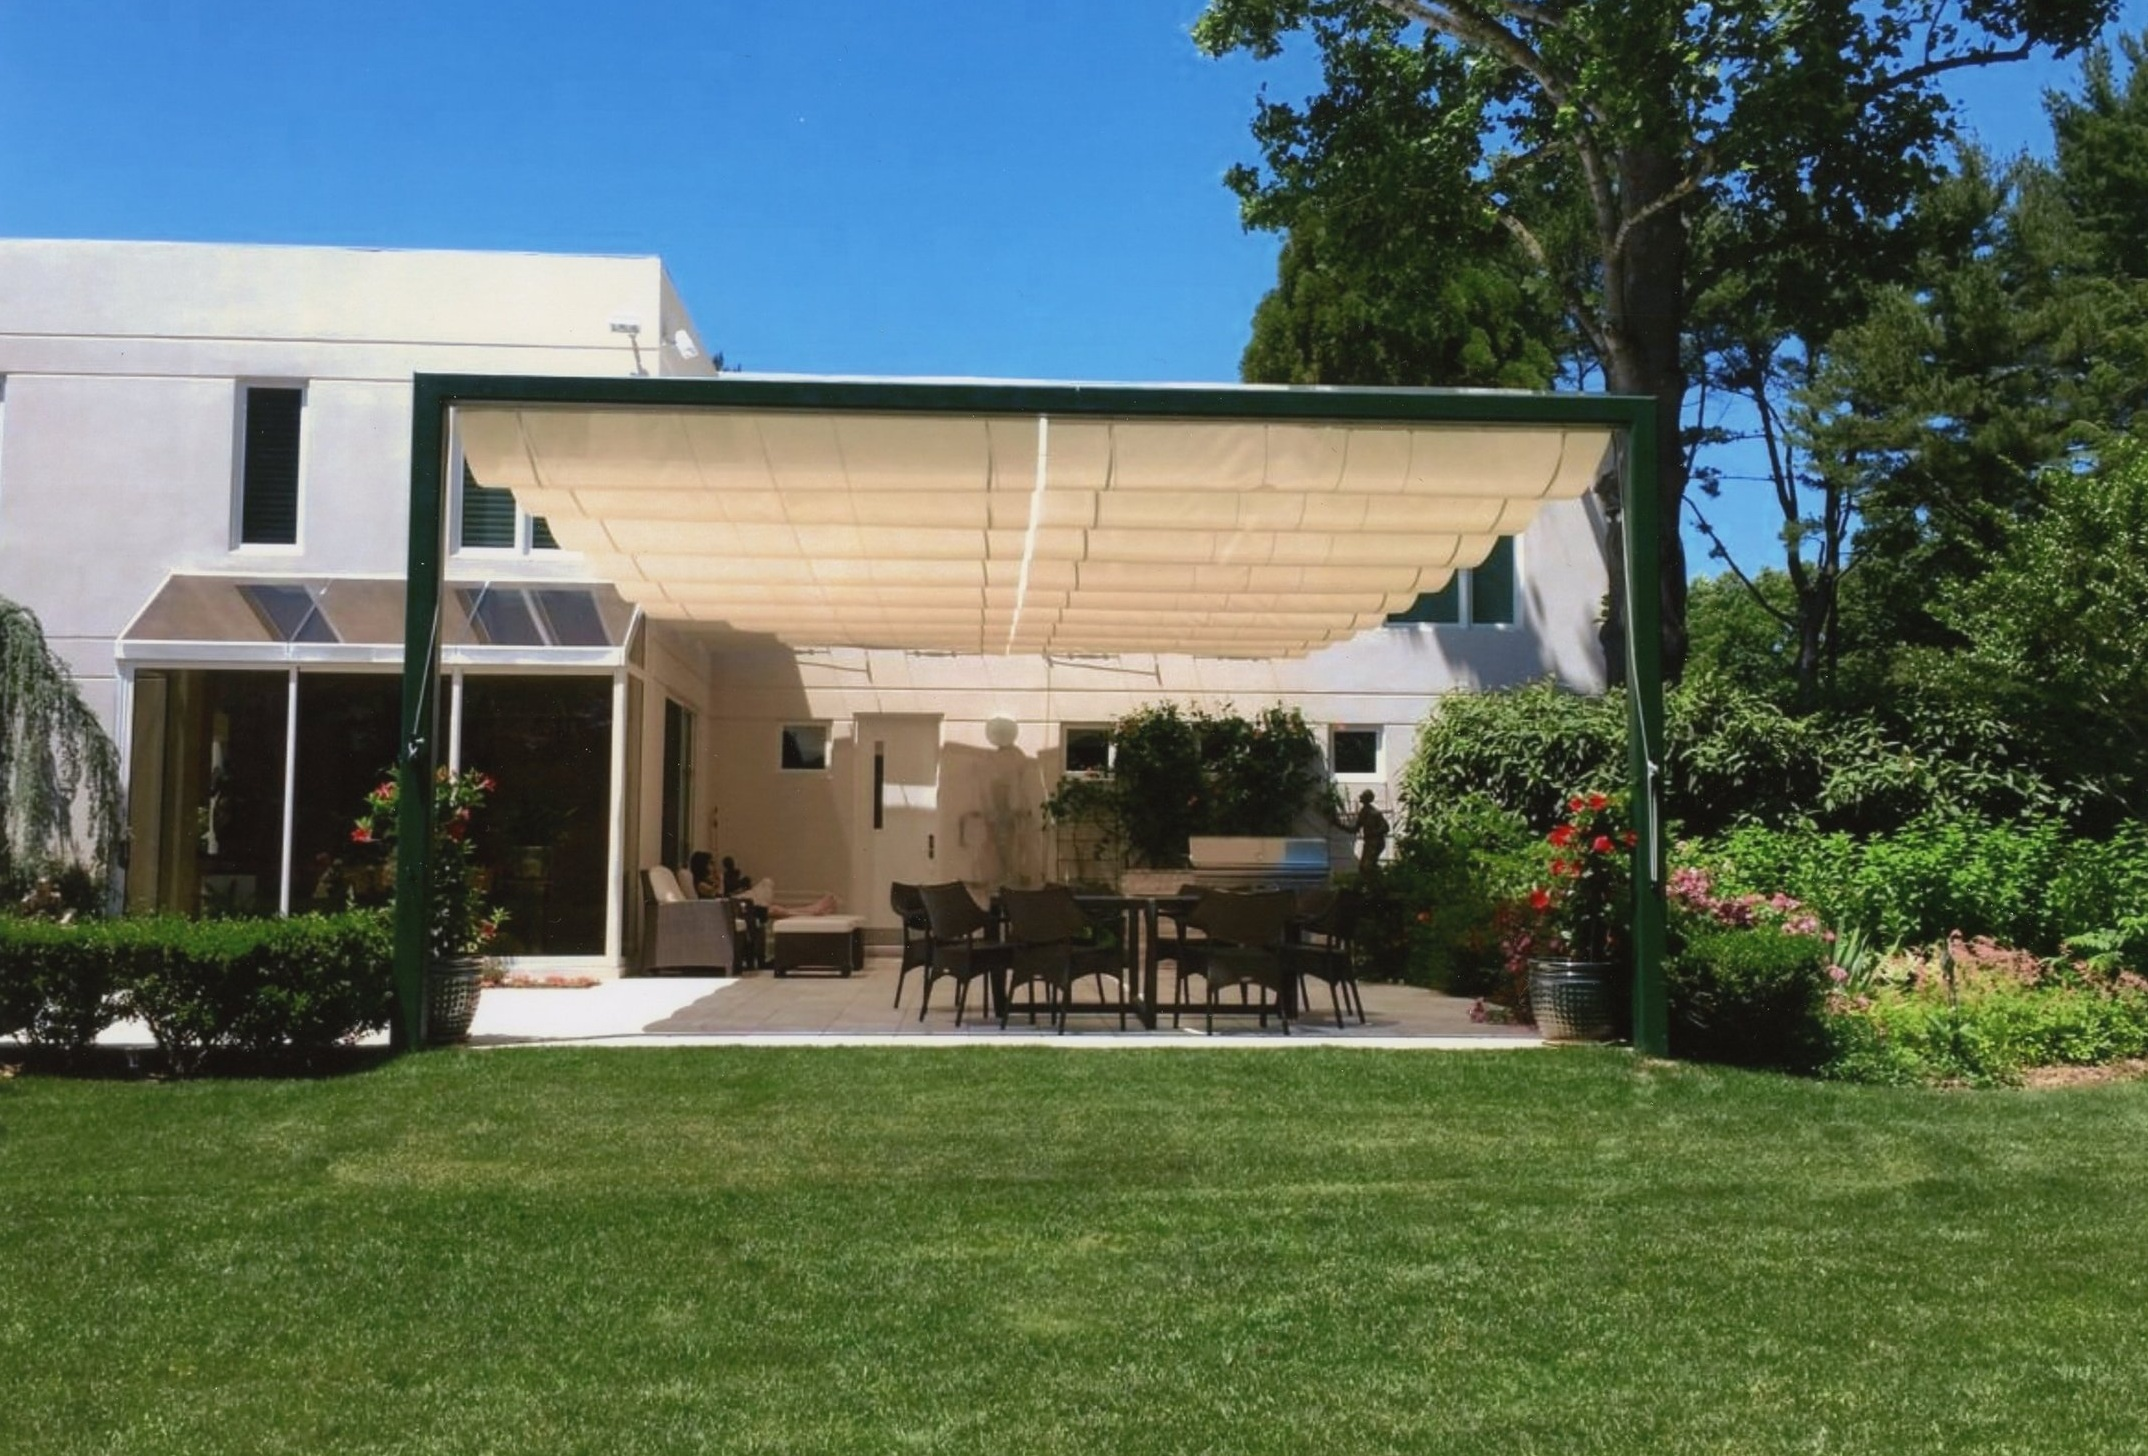 Residential Awning - Infinity Canopy